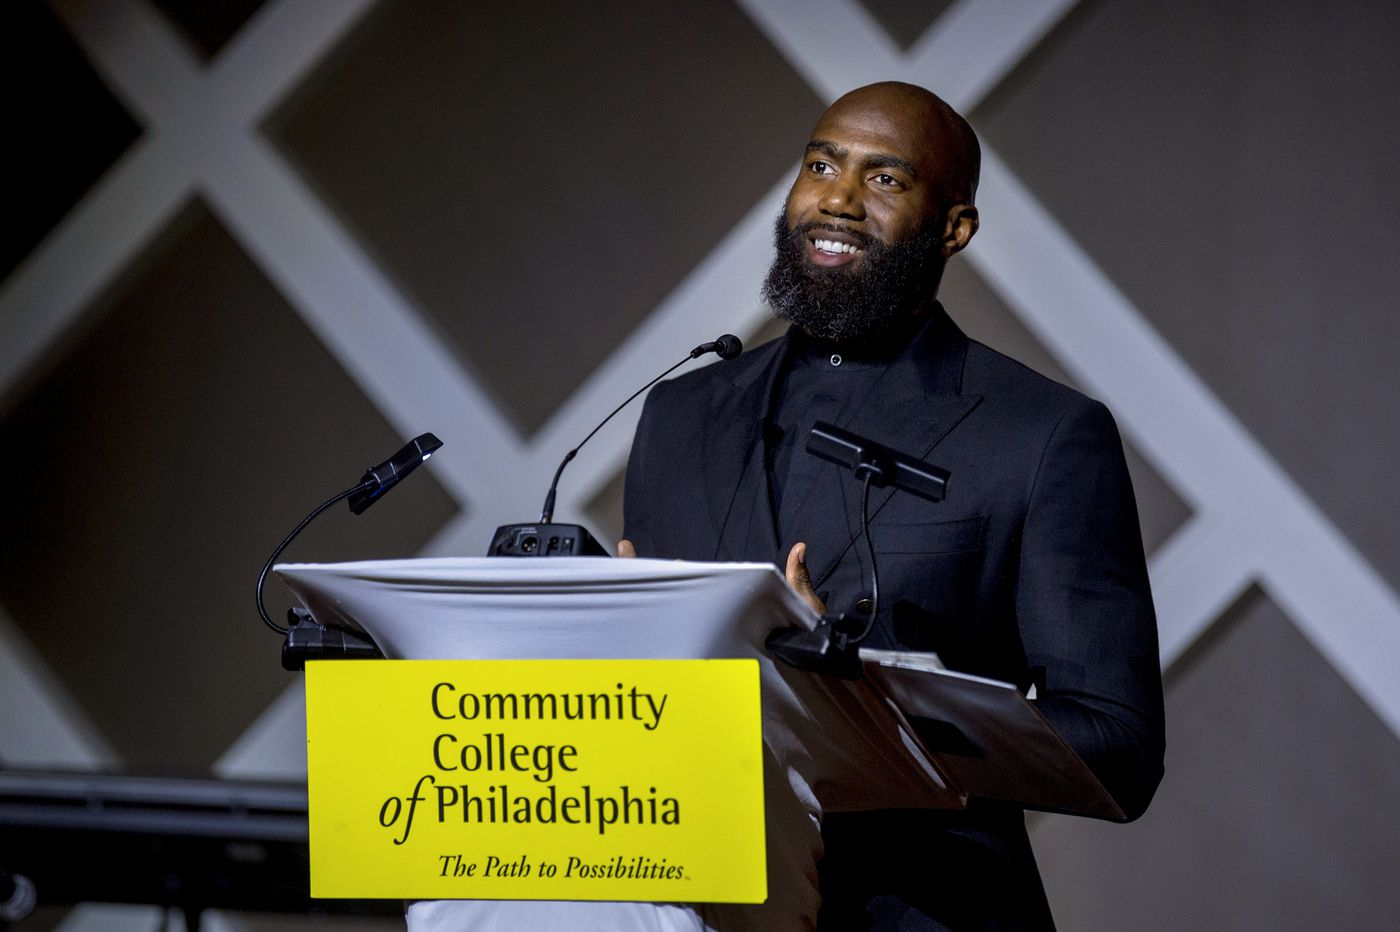 Eagles' Malcolm Jenkins receives award from Community College of Philadelphia for work in the inner city